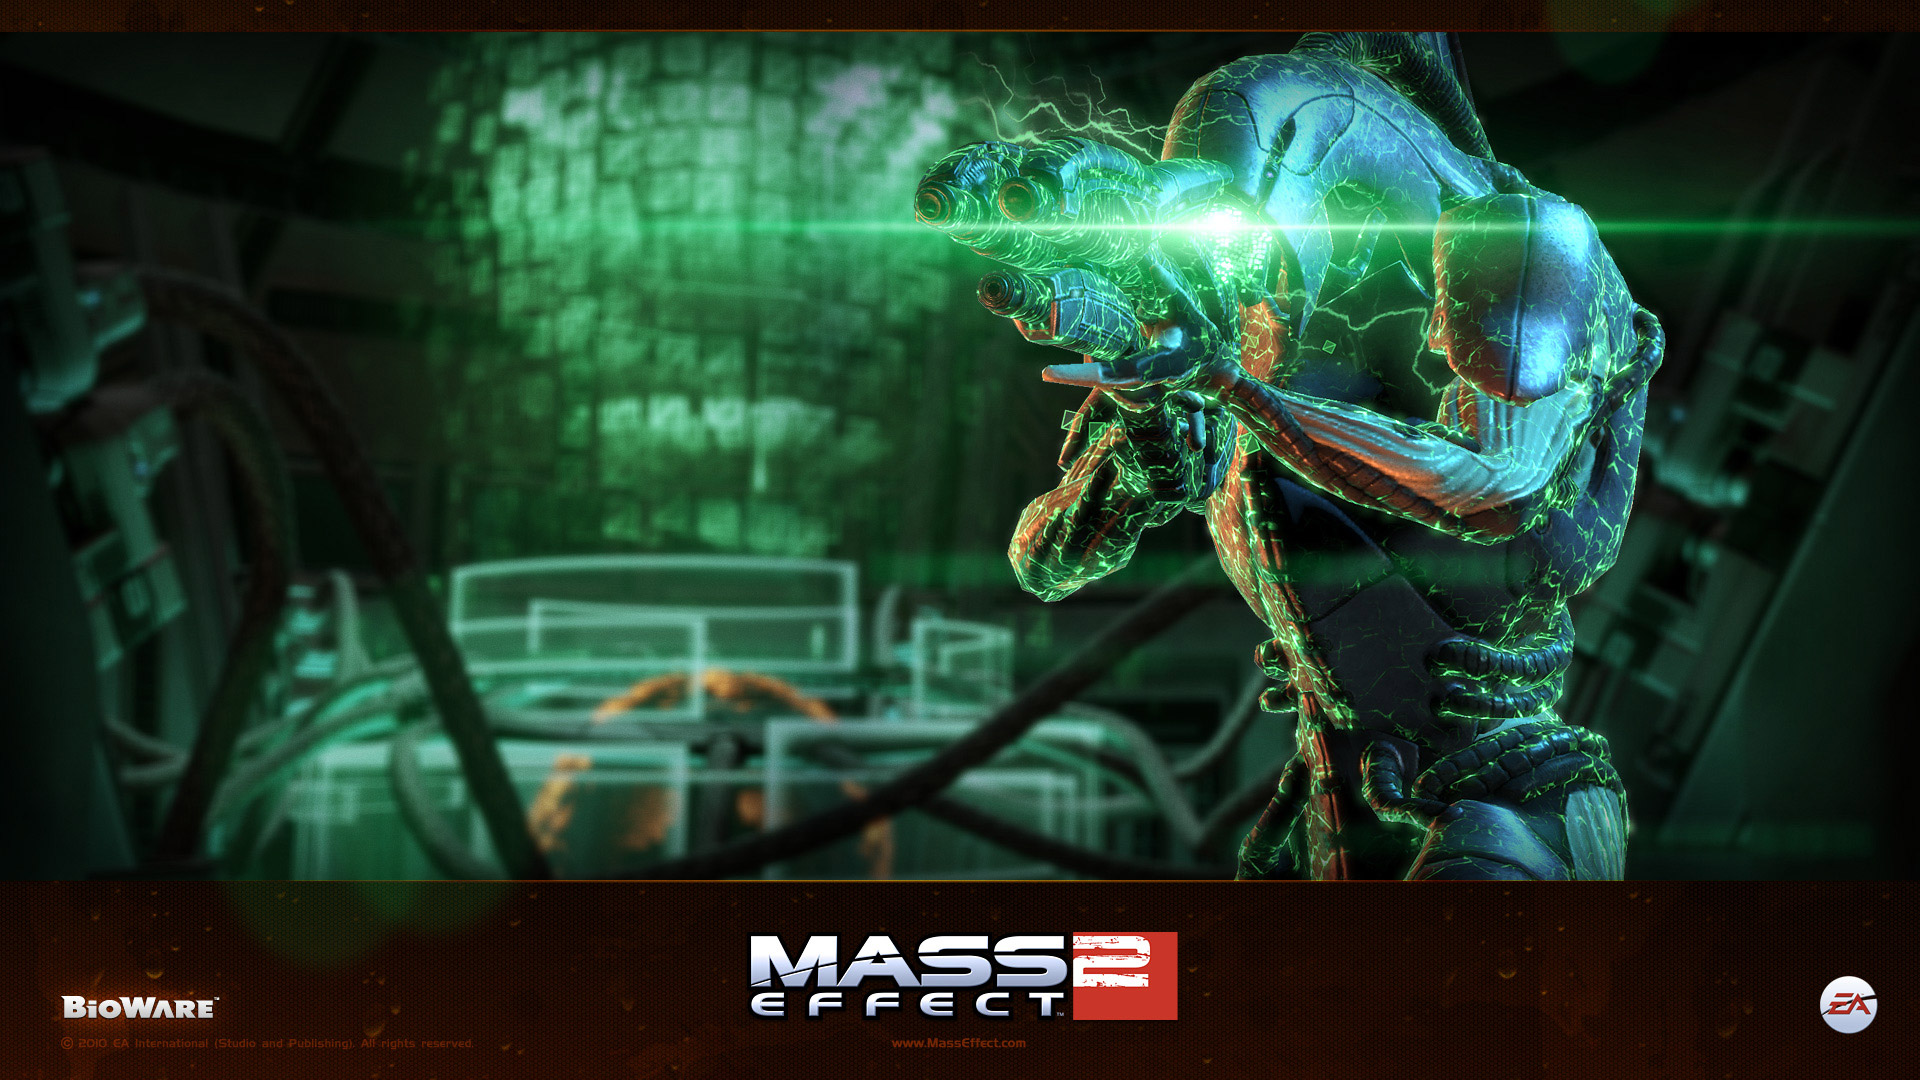 Mass Effect 2 Wallpaper in 1920x1080